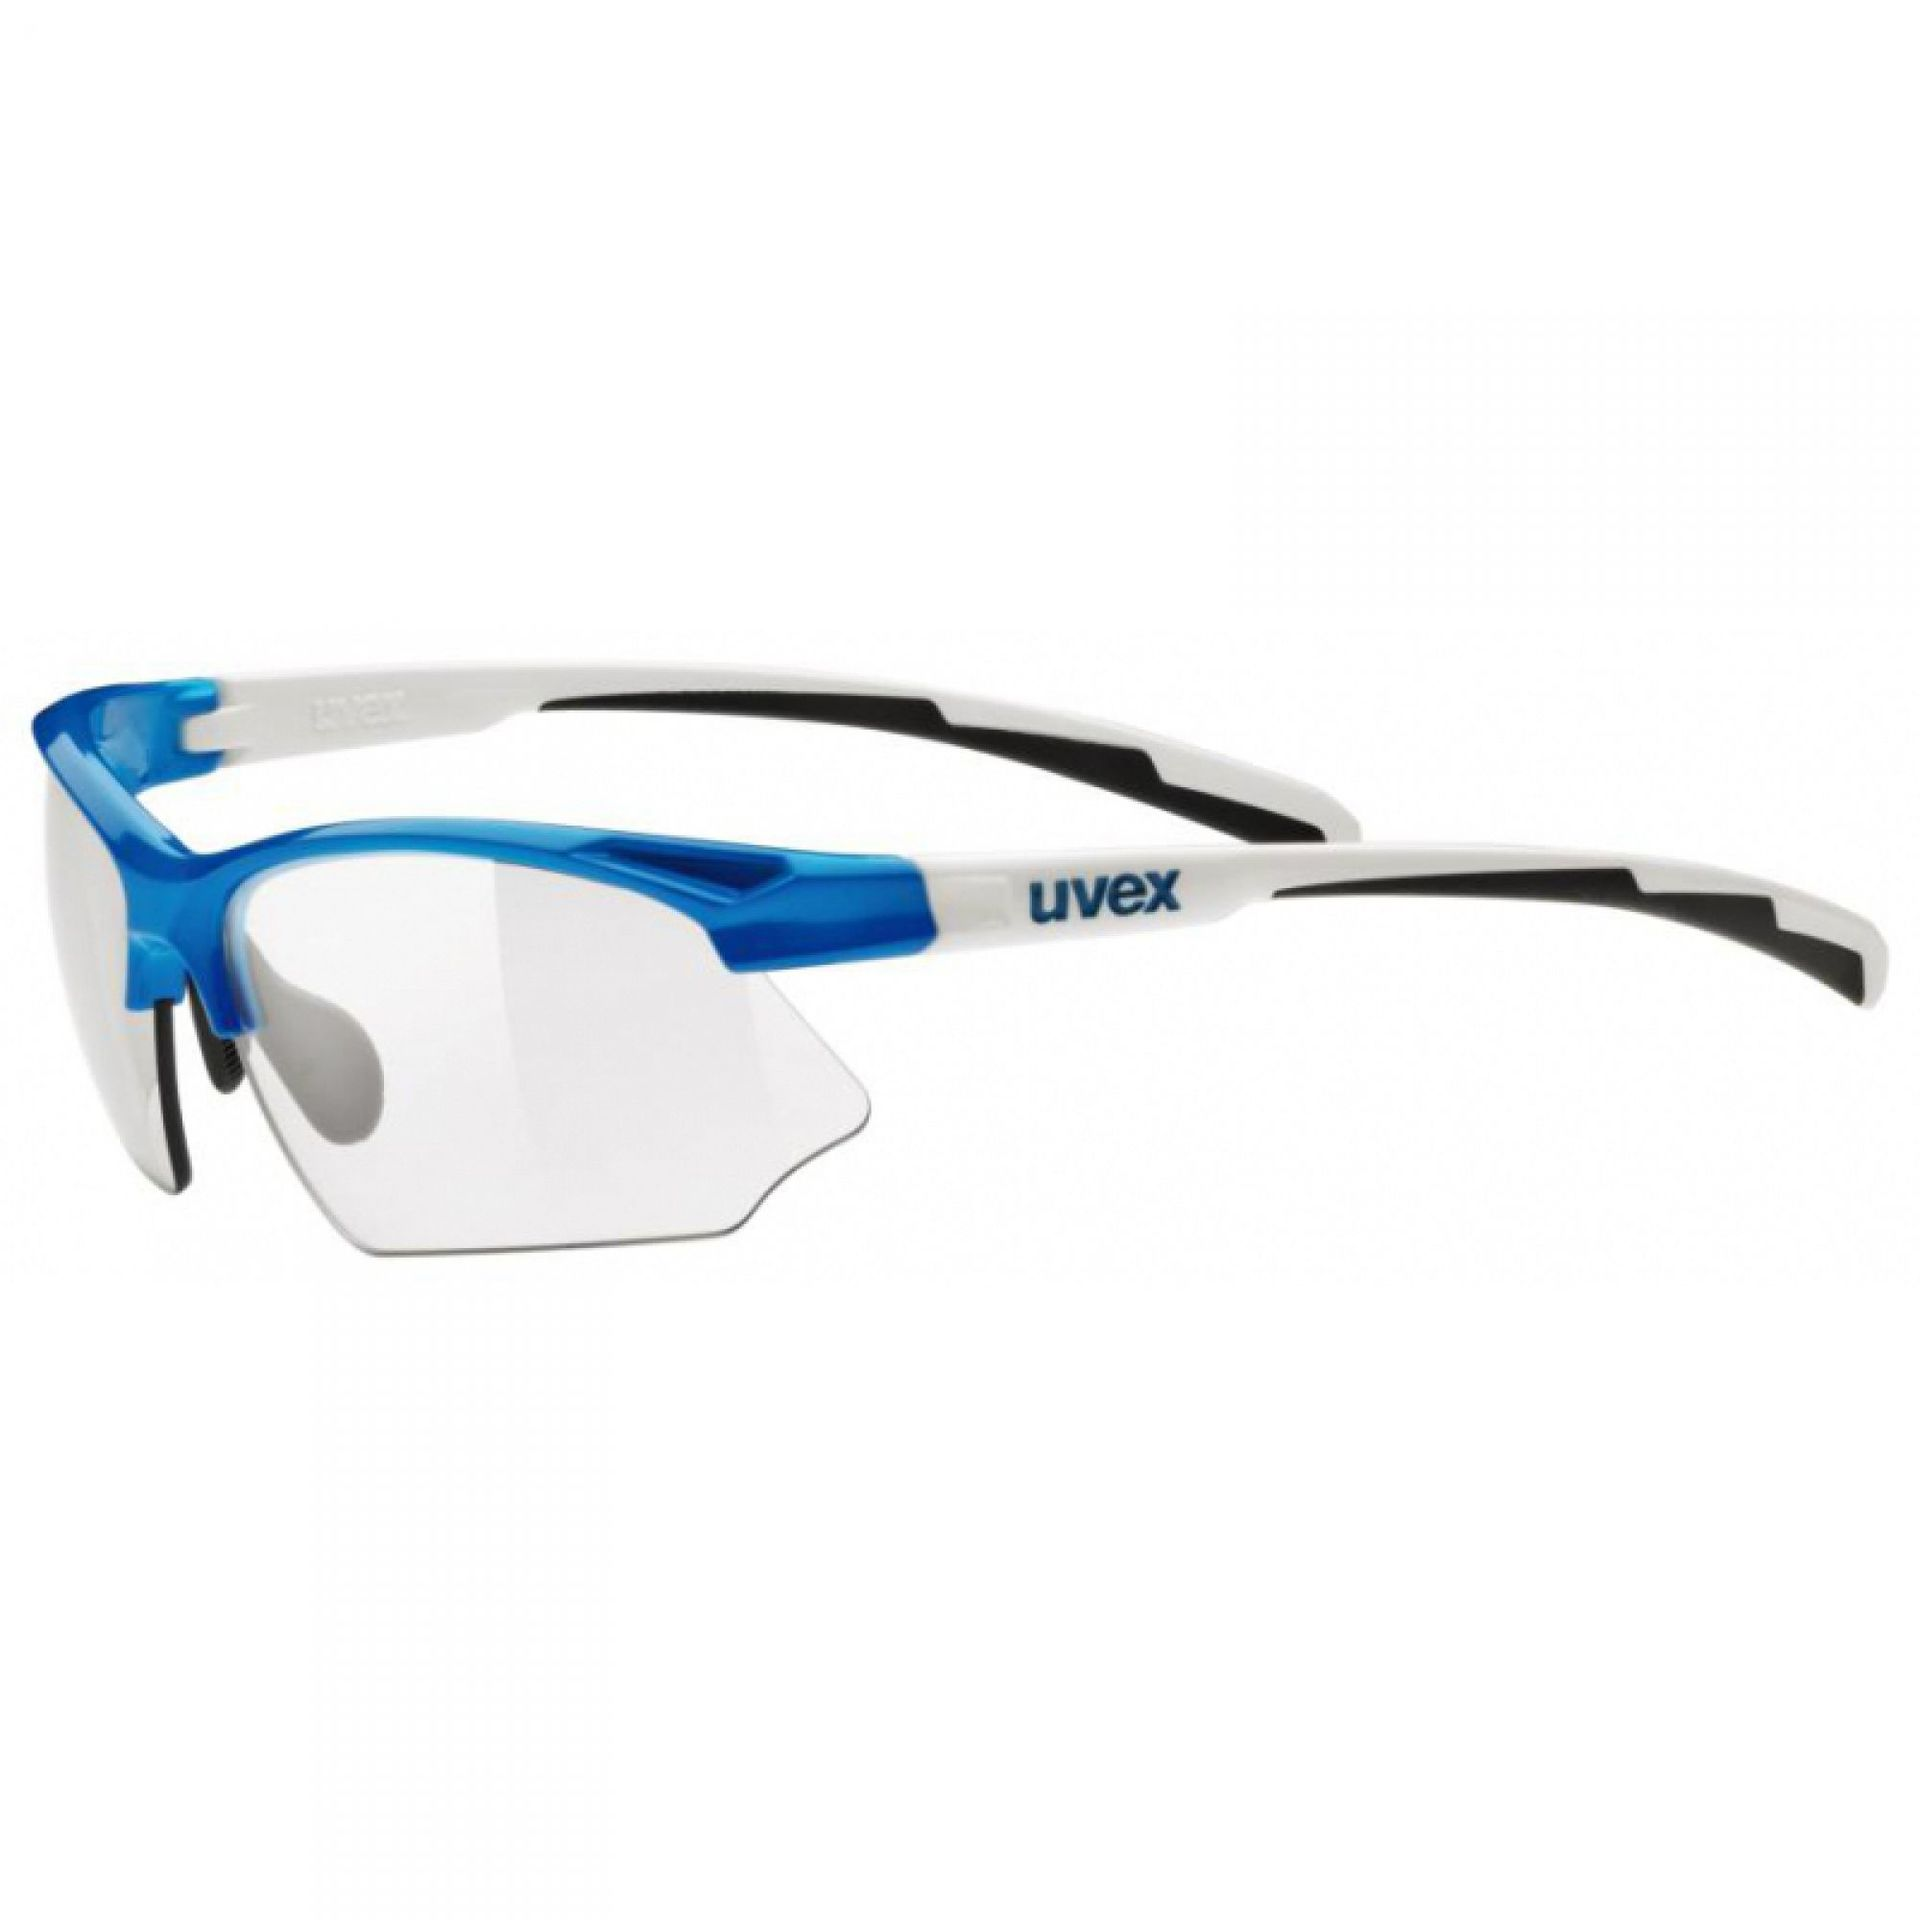 OKULARY UVEX SPORTSTYLE 802 WHITE BLUE